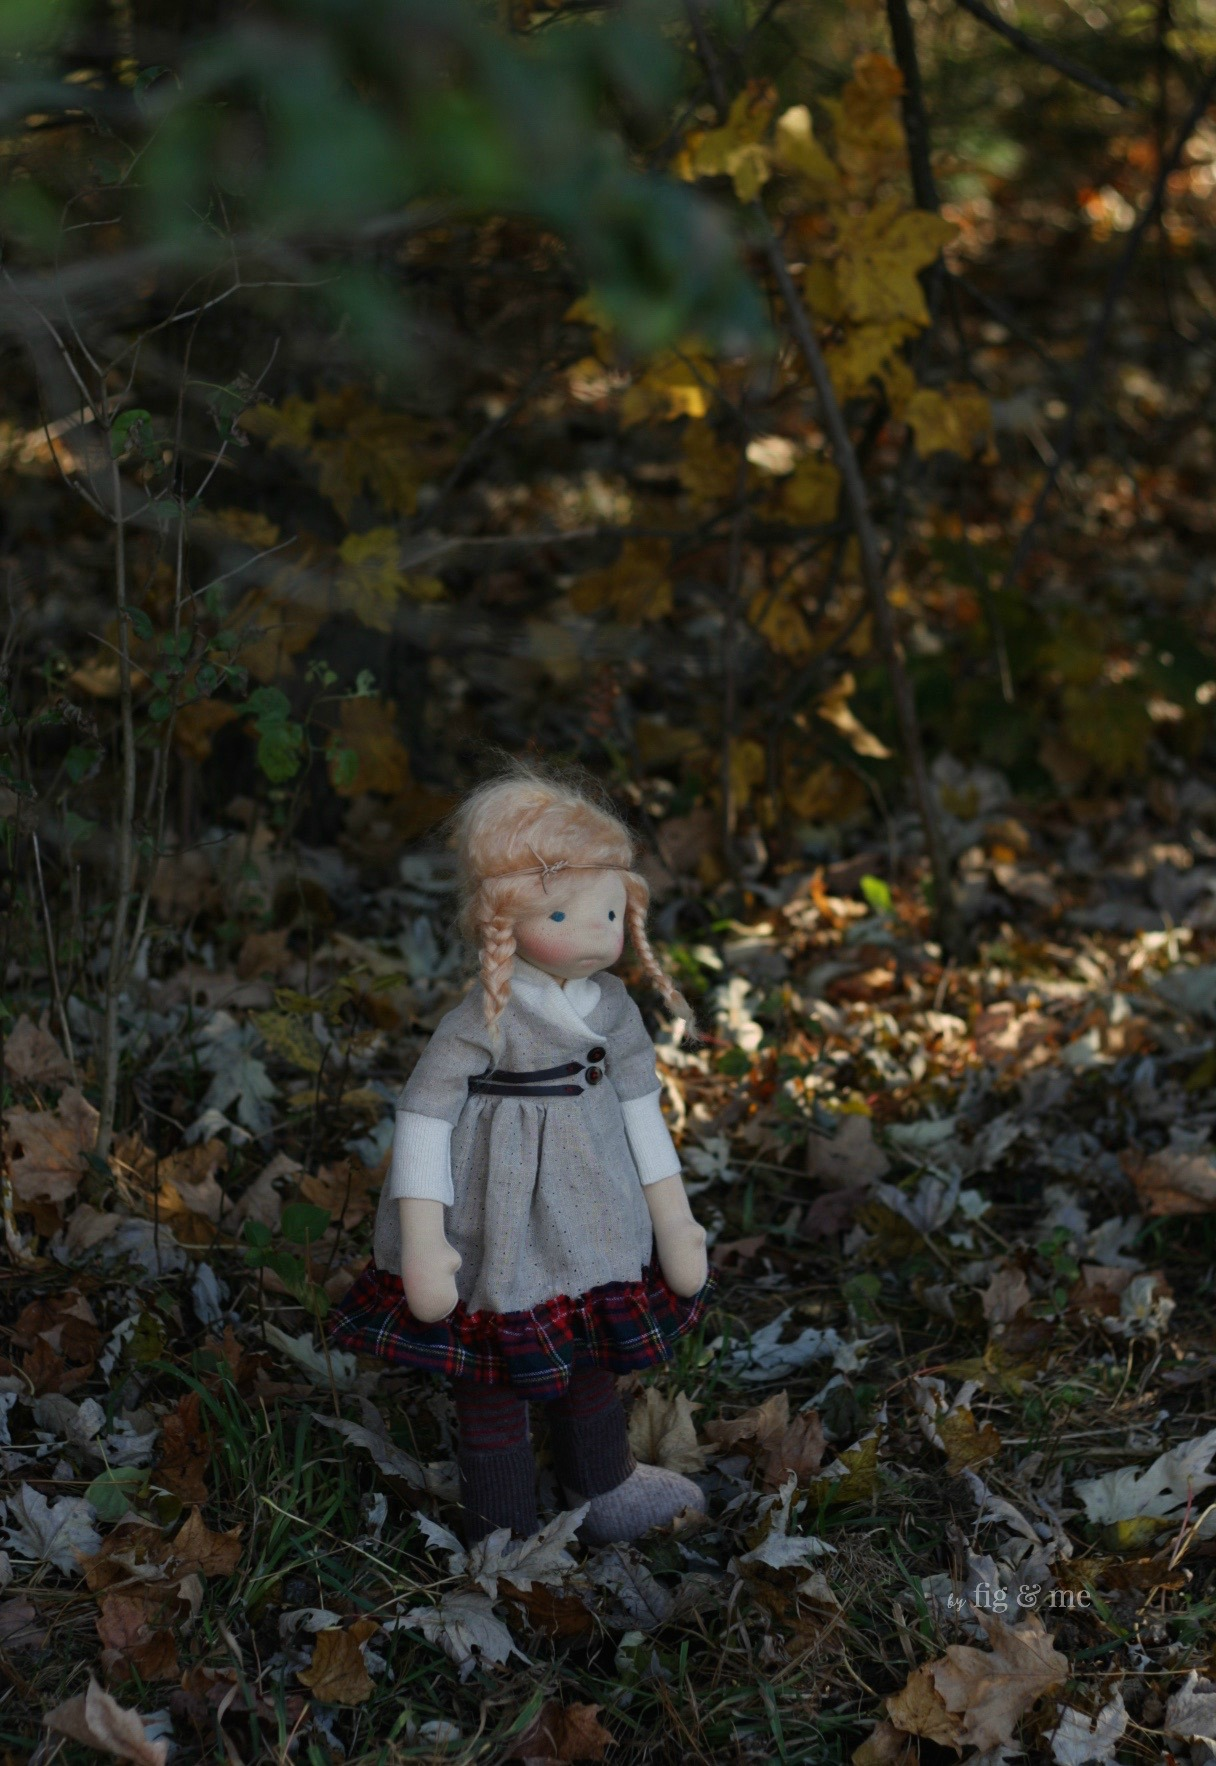 Iona, a natural fiber art doll by Fig and me. Inspired by Scotland and its gaelic music.